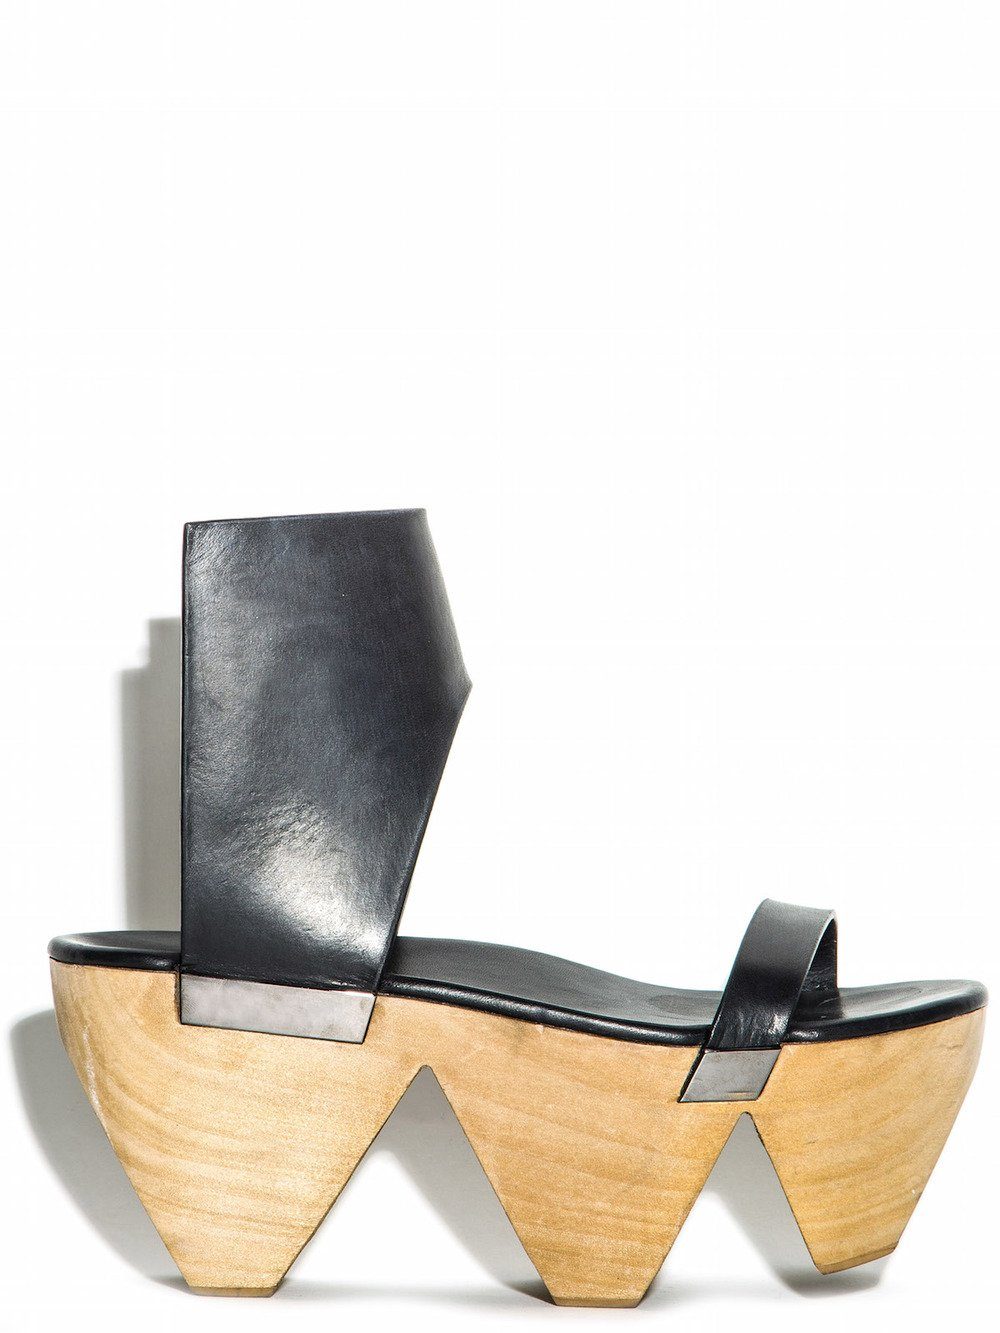 Rick Owens Leather Flatform Sandals recommend cheap online clearance supply gdGiWN8Y